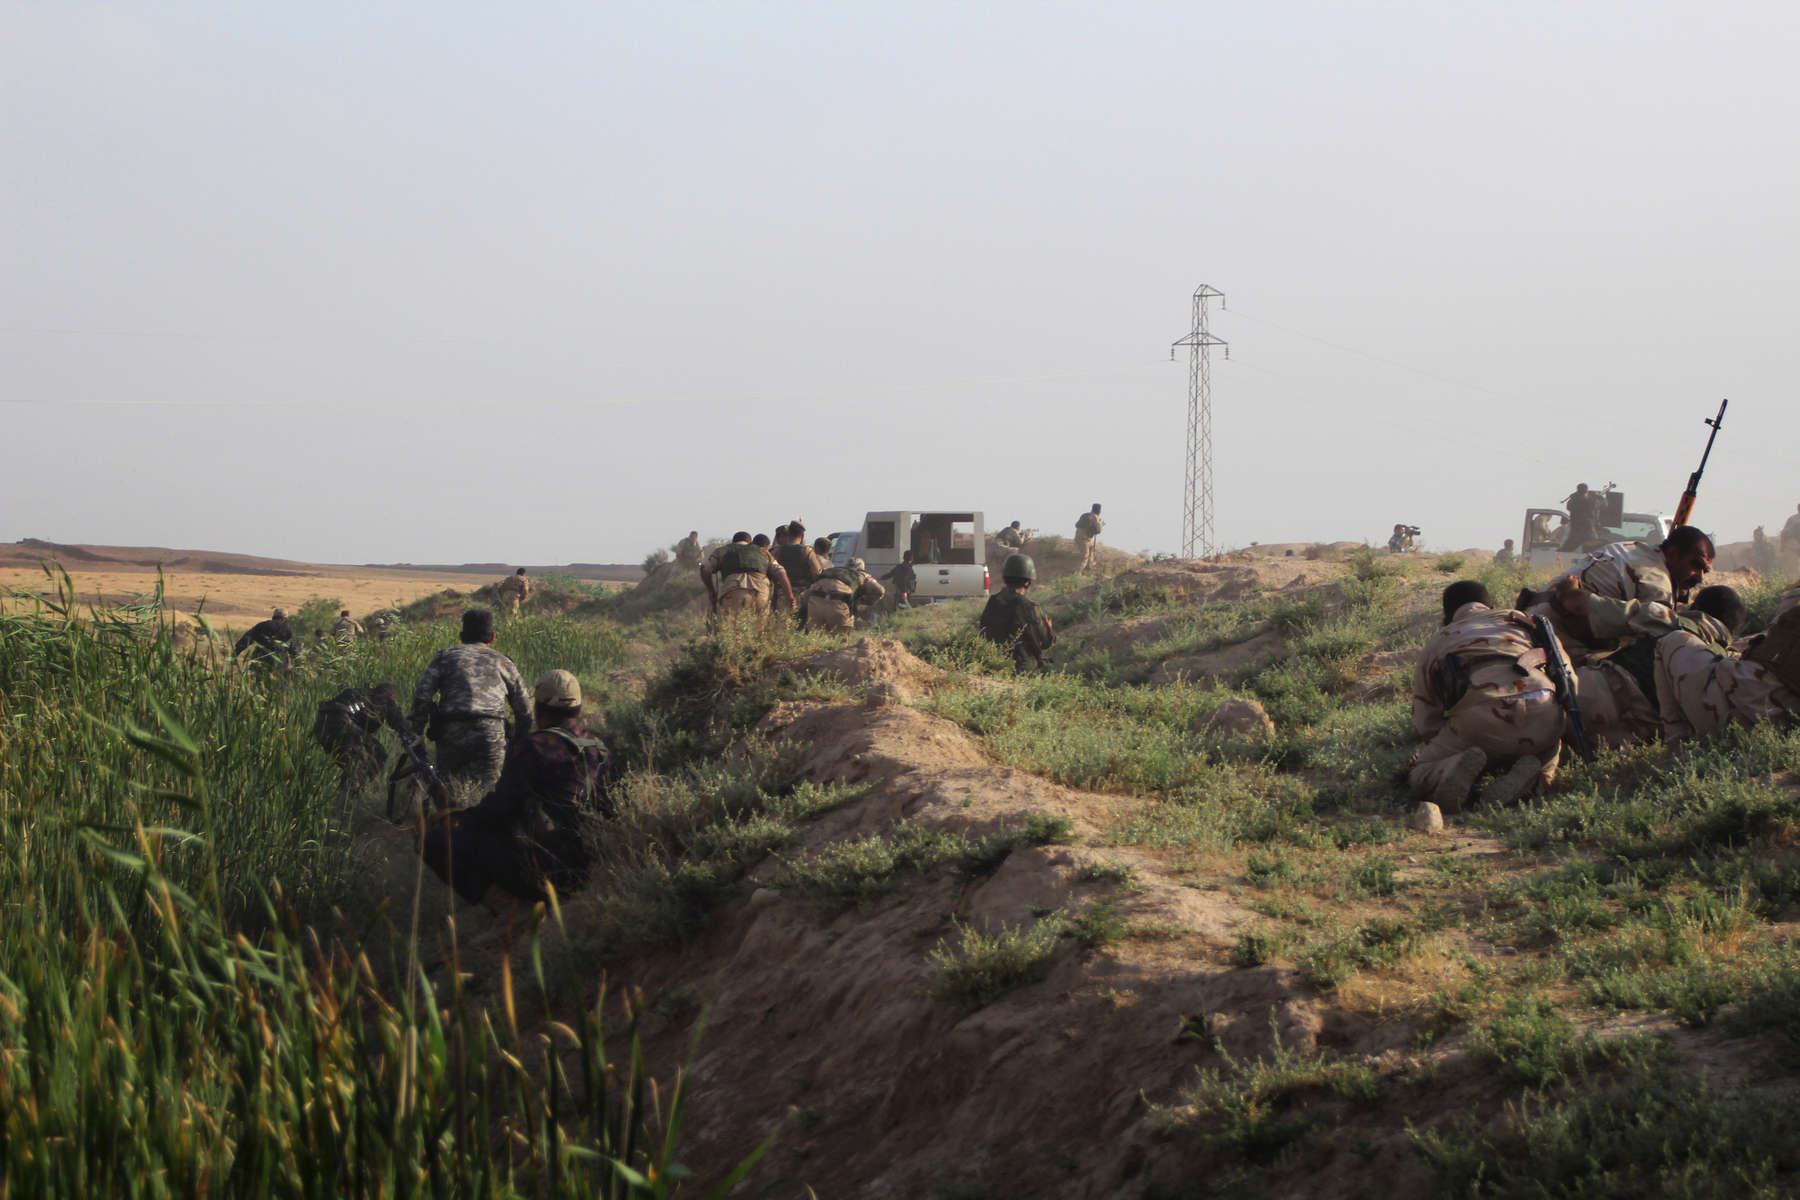 12/06/2014 -- Kirkuk, Iraq -- Fighting between Peshmerga, Iraqi police and ISIS fighters in the village of Mula Abdullah, south of Kirkuk.